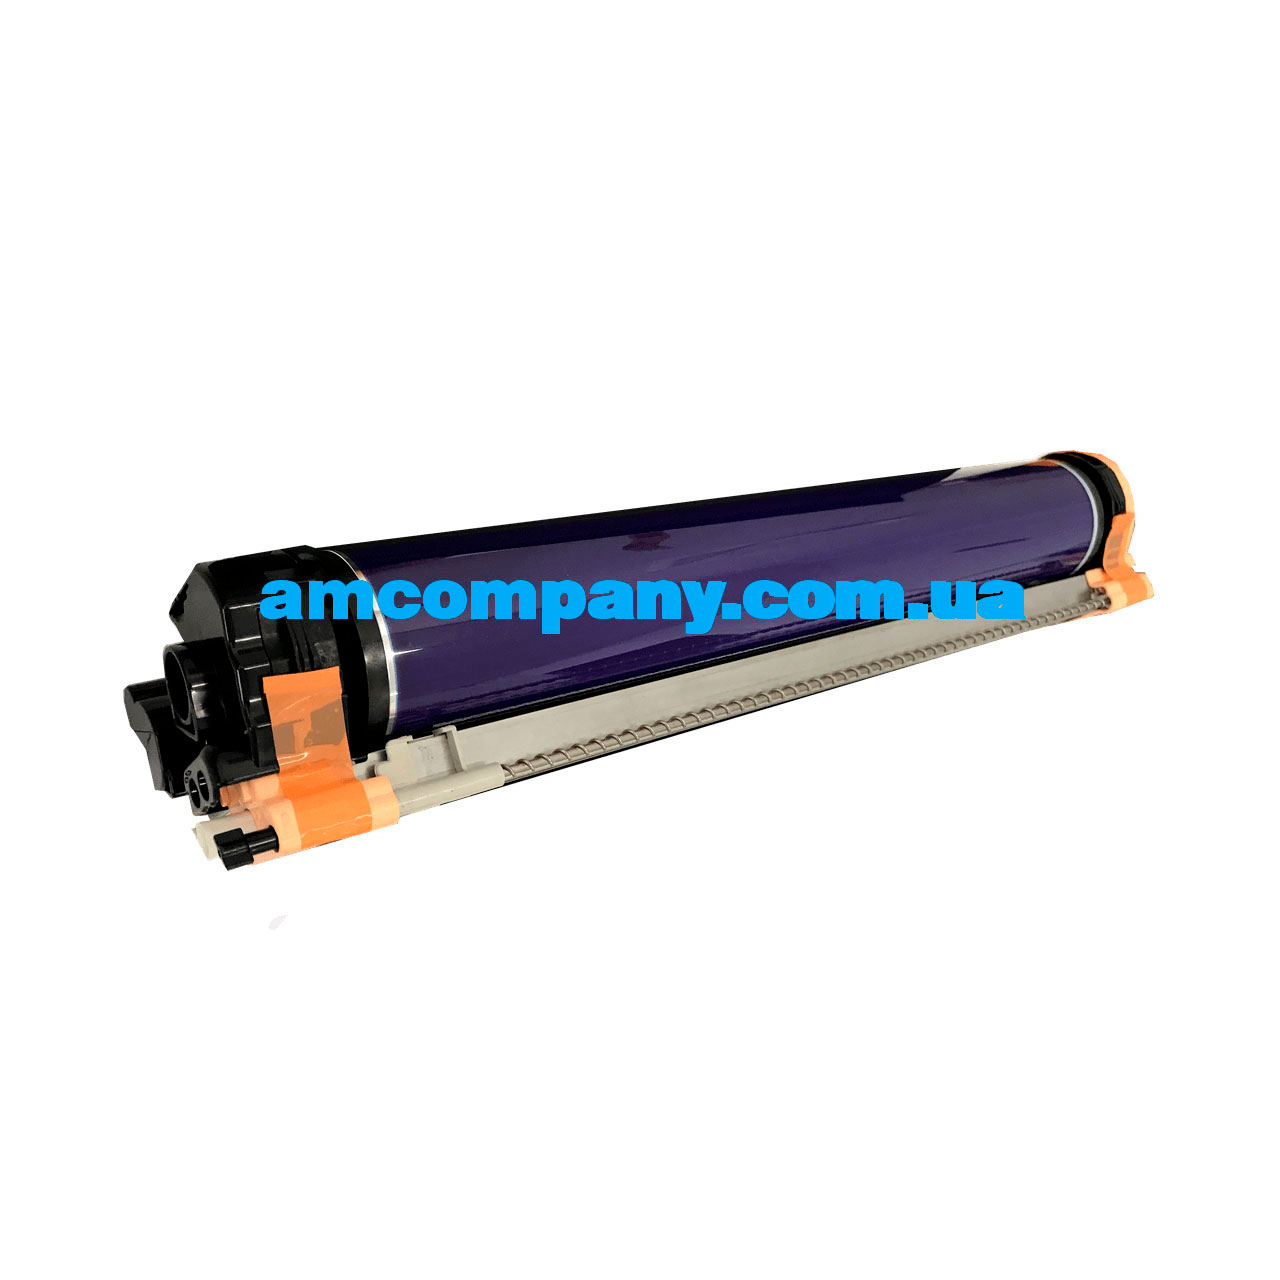 Драм картридж черный  (DRUM CARTRIDGE BLACK) Xerox 700/ 700i/ 770 Pro/ C75/ J75 ( 013R00655 )